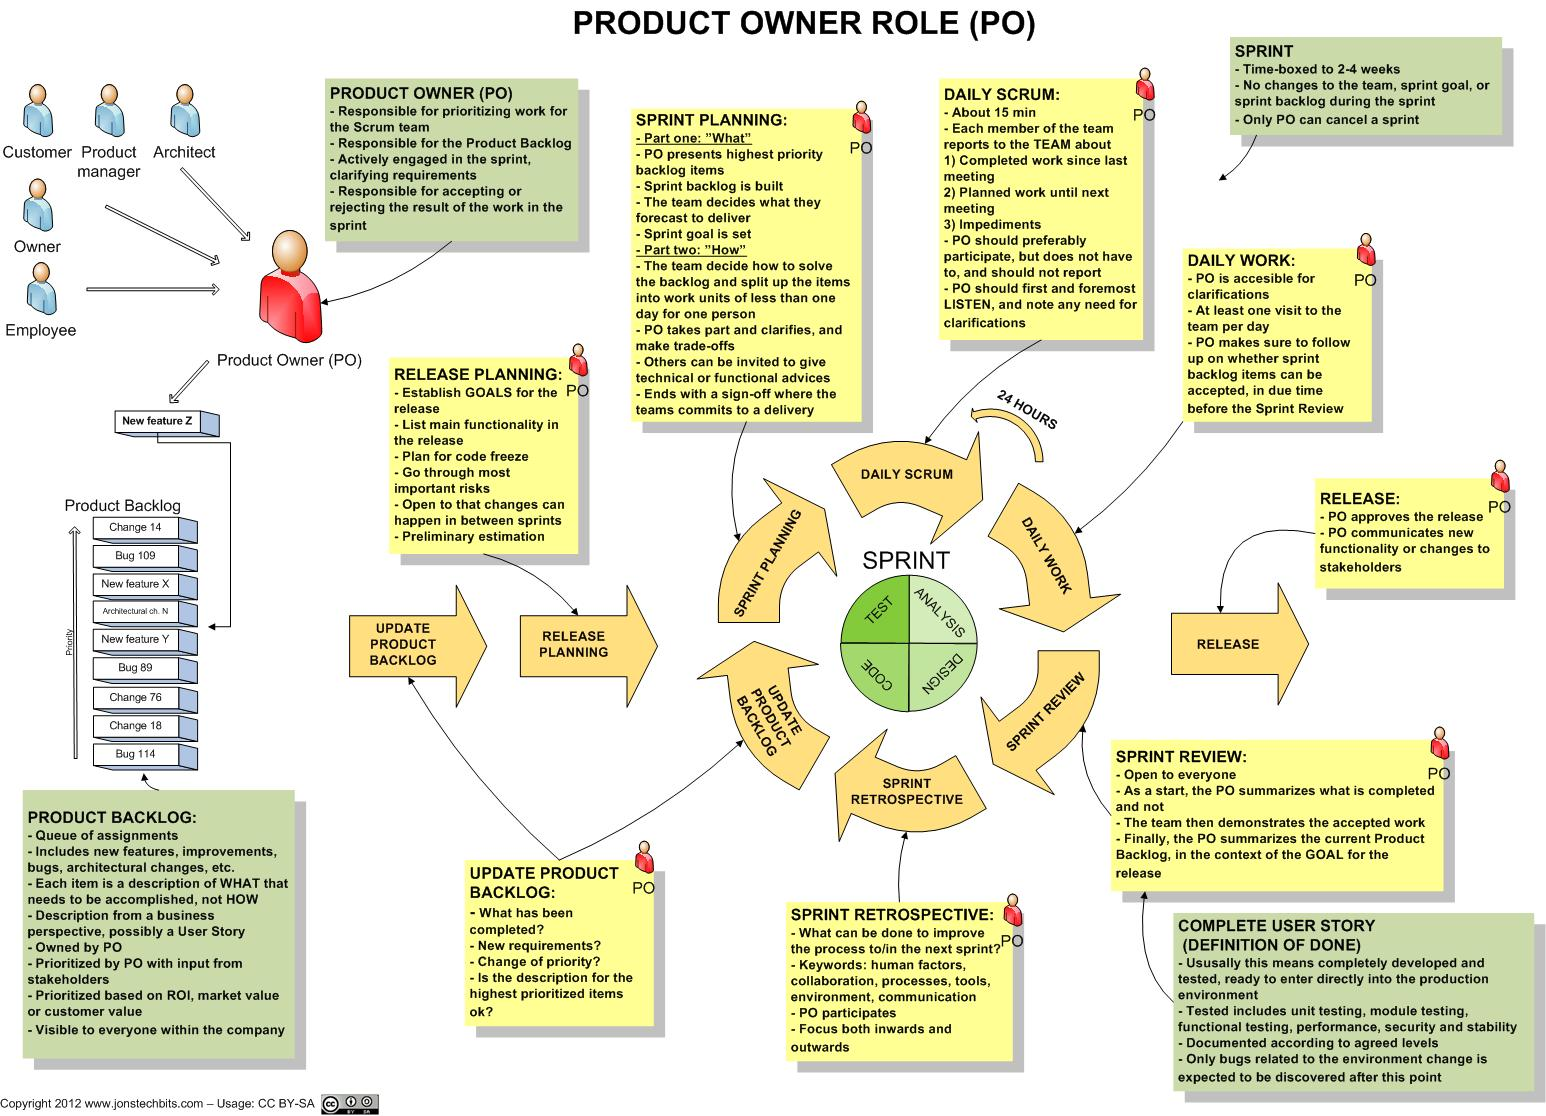 scrum-product-owner-role